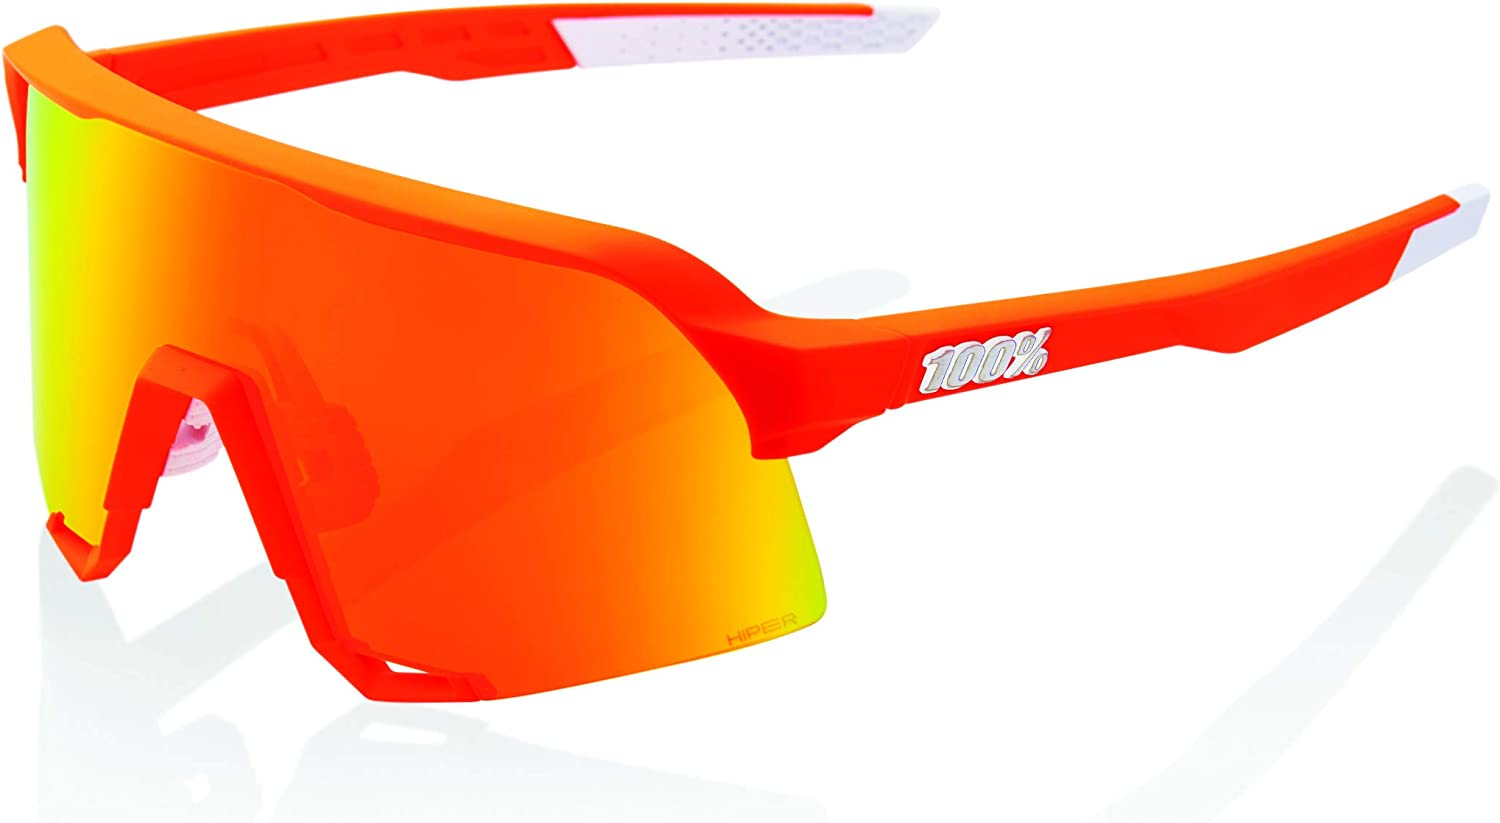 100% S3 Sport Performance Sunglasses - Sport and Cycling Eyewear